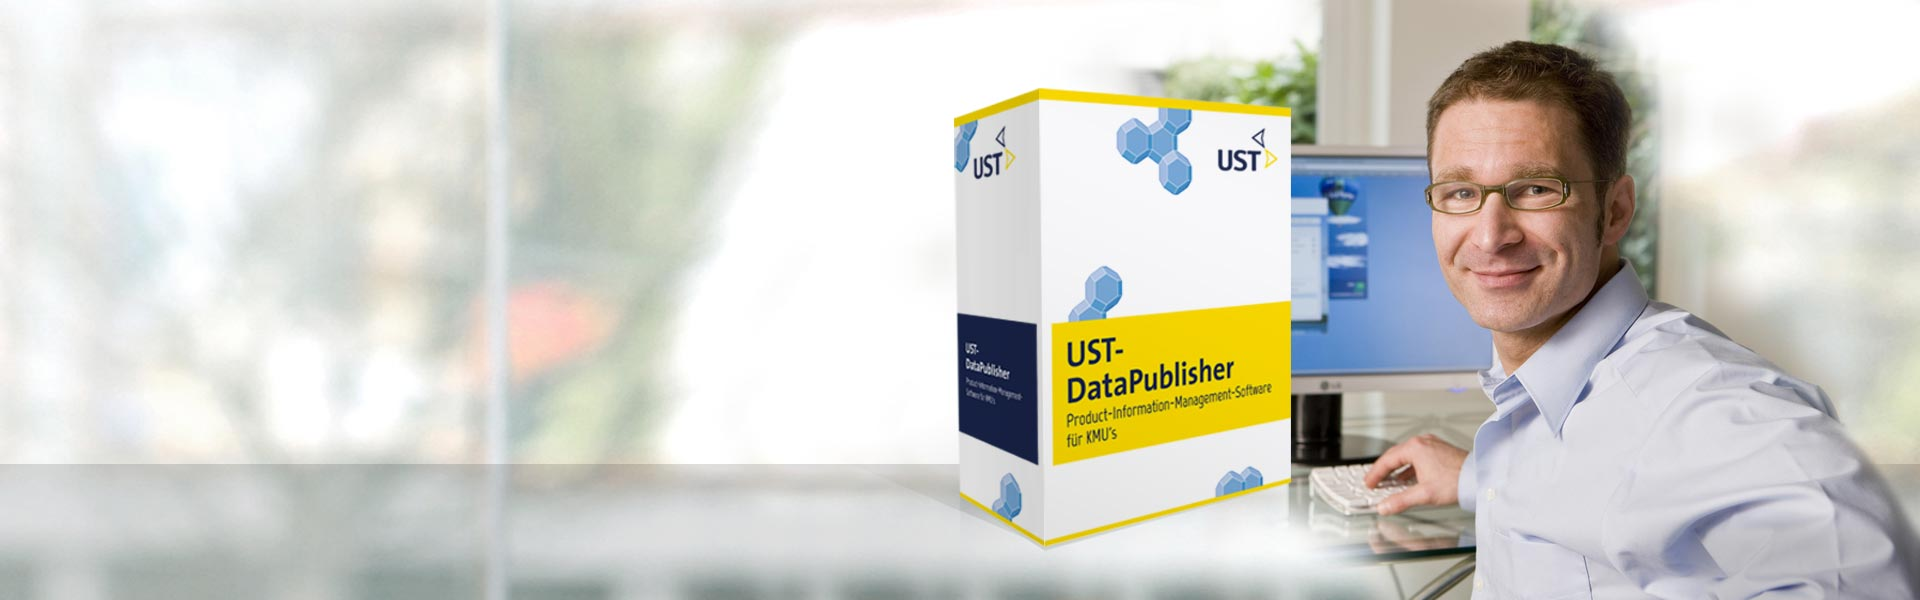 UST DataPublisher